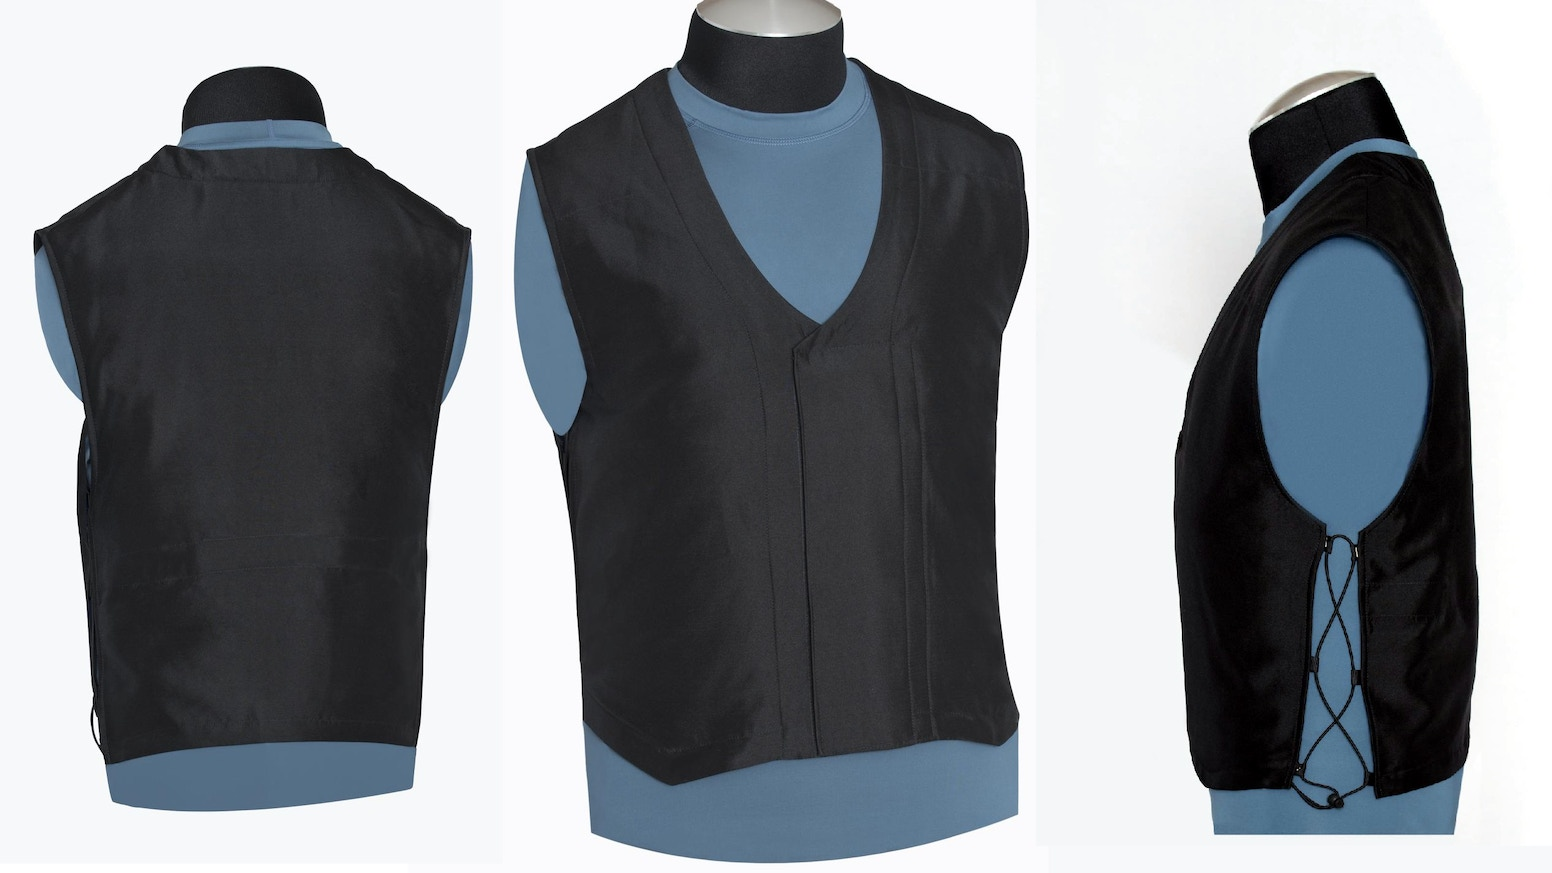 """Fashionably Cool: The Cold Shoulder 2.0 Calorie-Burning Vest is the top crowdfunding project launched today. Fashionably Cool: The Cold Shoulder 2.0 Calorie-Burning Vest raised over $53940 from 326 backers. Other top projects include """"I Know Catherine, The Log Lady"""" with David Lynch ??, The Very Good Bra, APA-Intemporal 